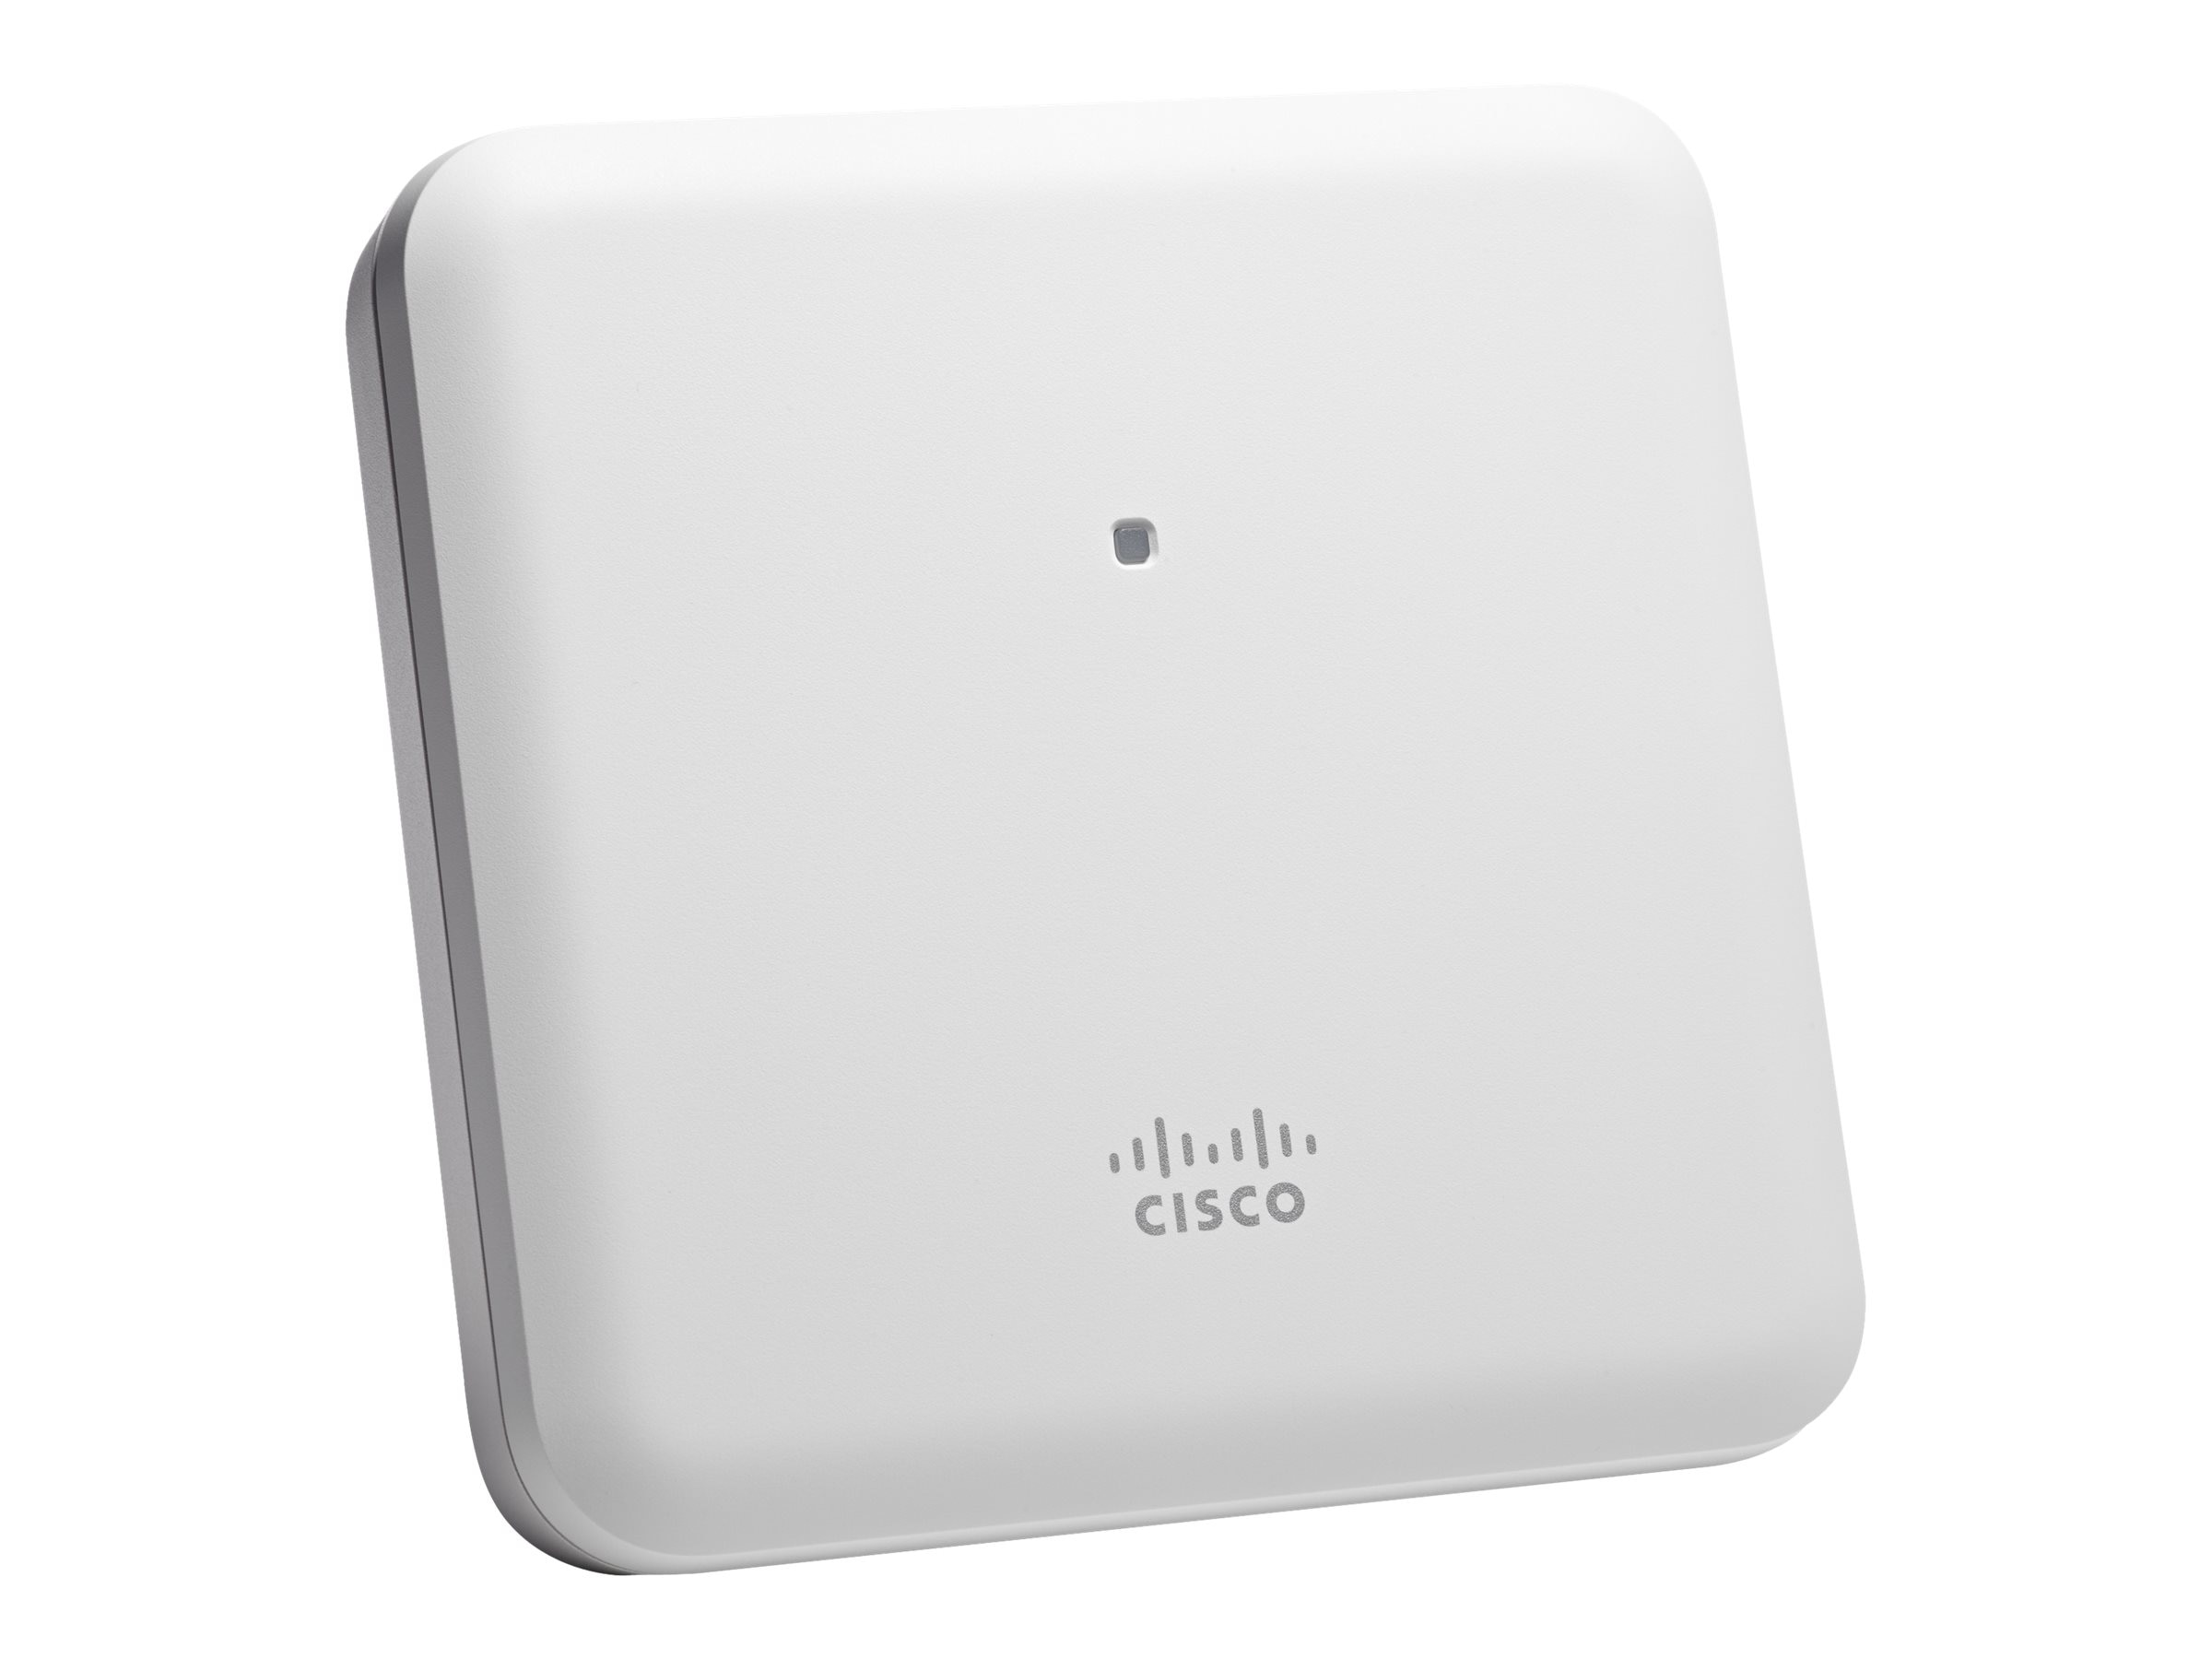 Cisco Aironet 1851i AP w 4x4:4SS, Int Ant, Q Domain Configurable, AIR-AP1852I-Q-K9C